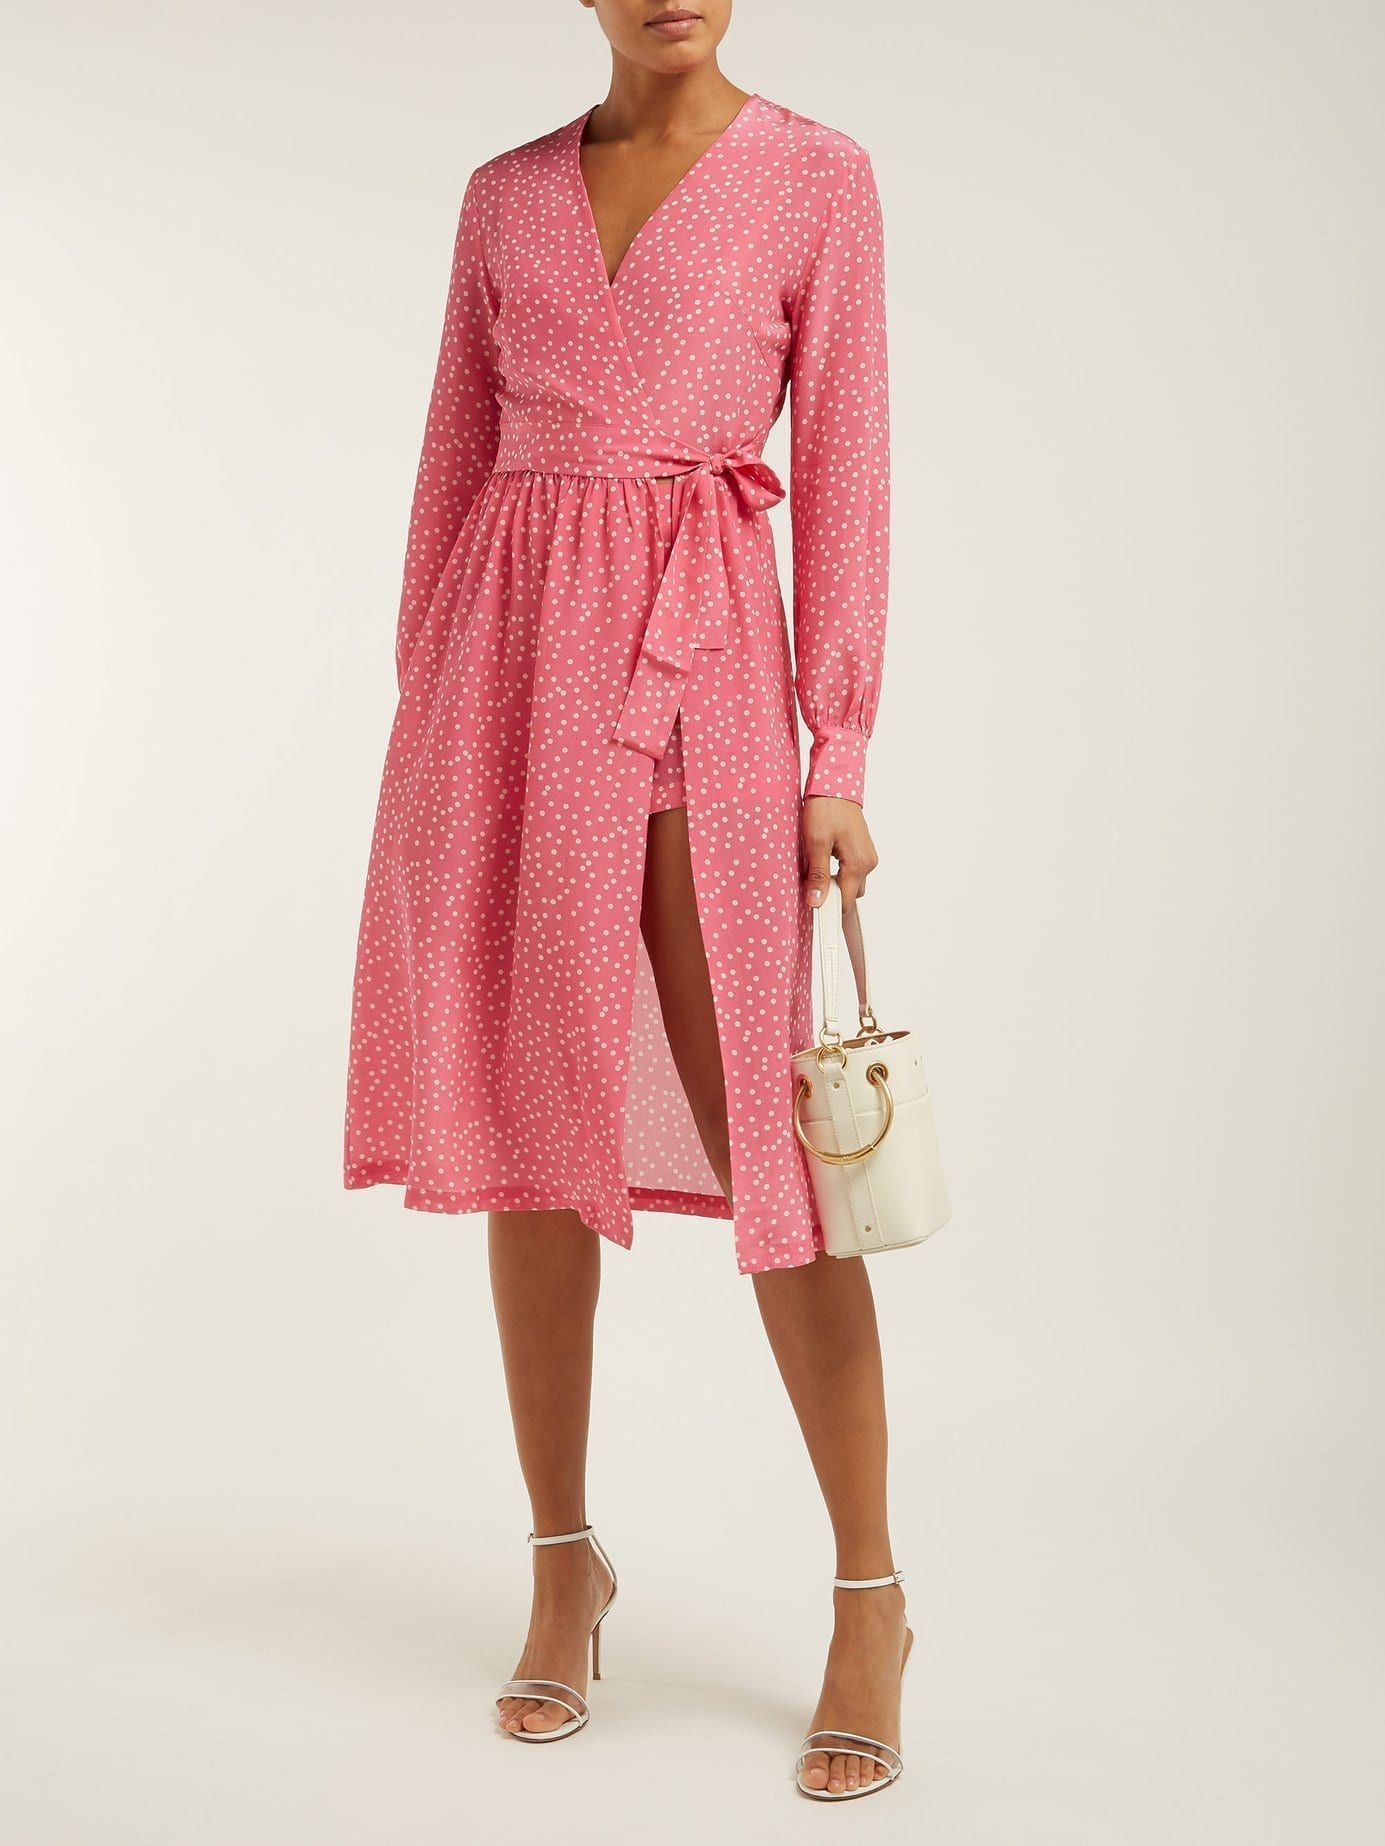 ADRIANA DEGREAS Mille Punti Polka Dot Print Silk Crepe Wrap Pink Dress